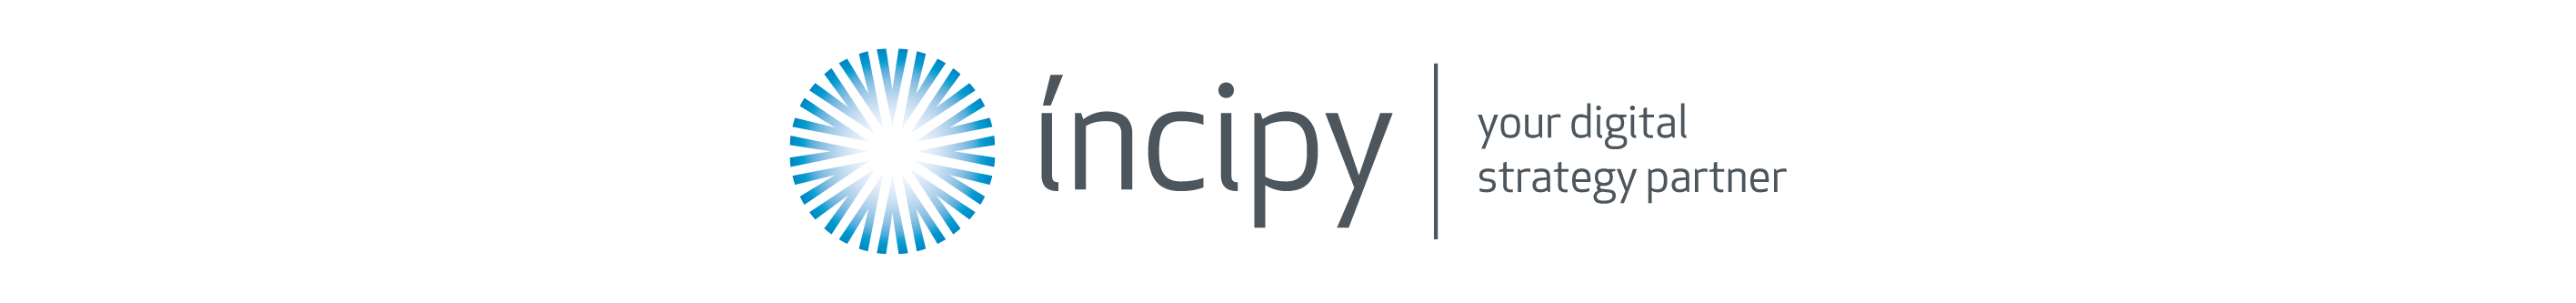 LOGO INCIPYCENT-01.png